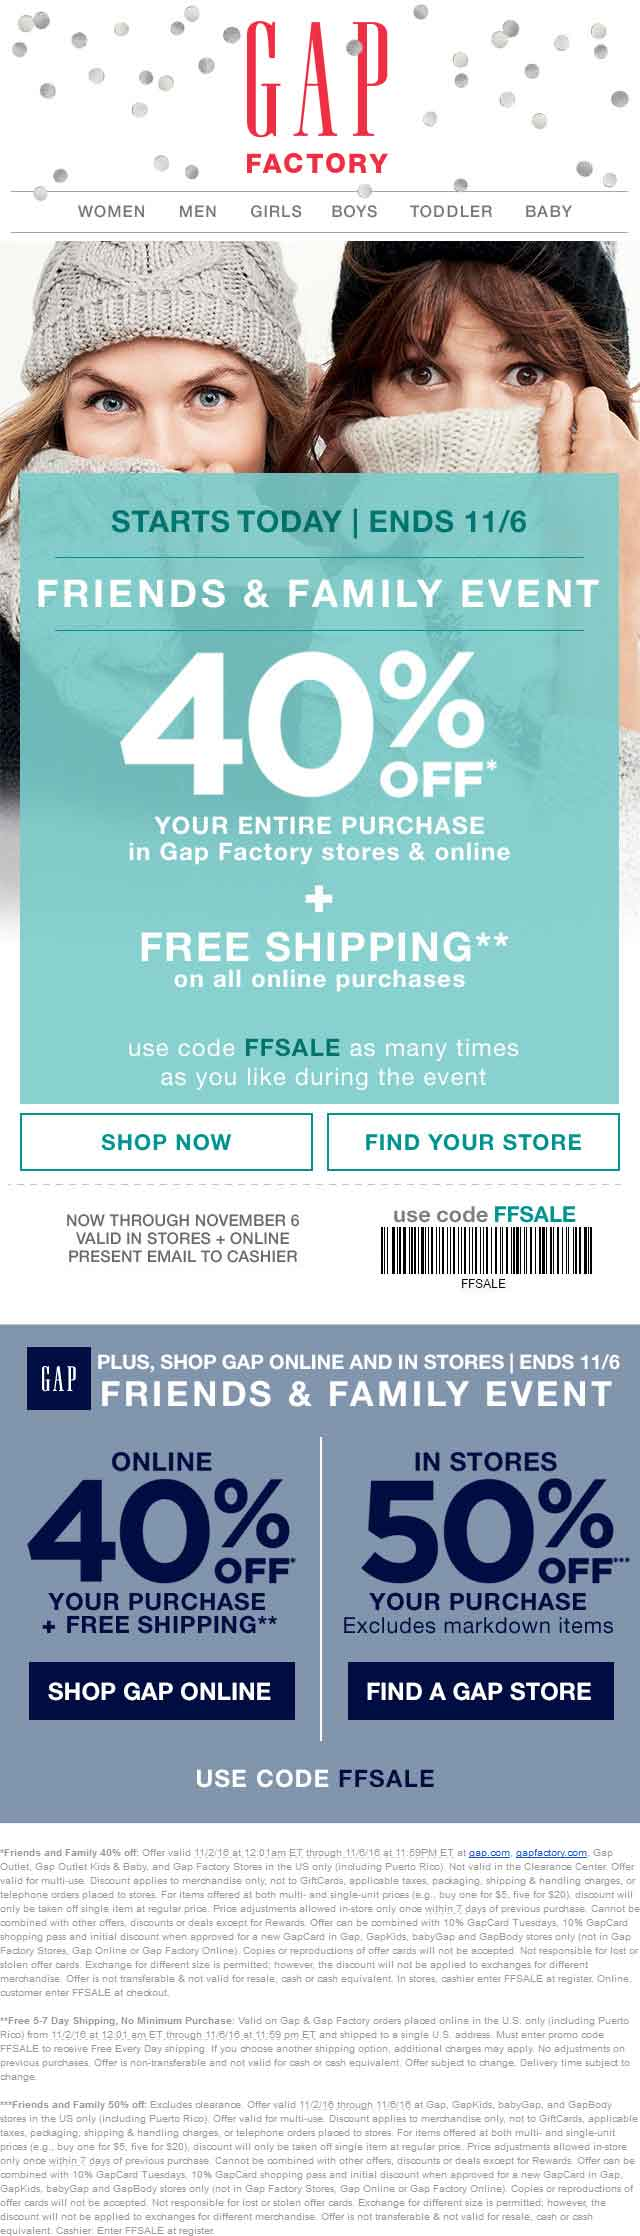 Gap Coupon March 2019 50% off at Gap, Gap Outlet, Gap Outlet Kids & Baby, and Gap Factory, or 40% online via promo code FFSALE